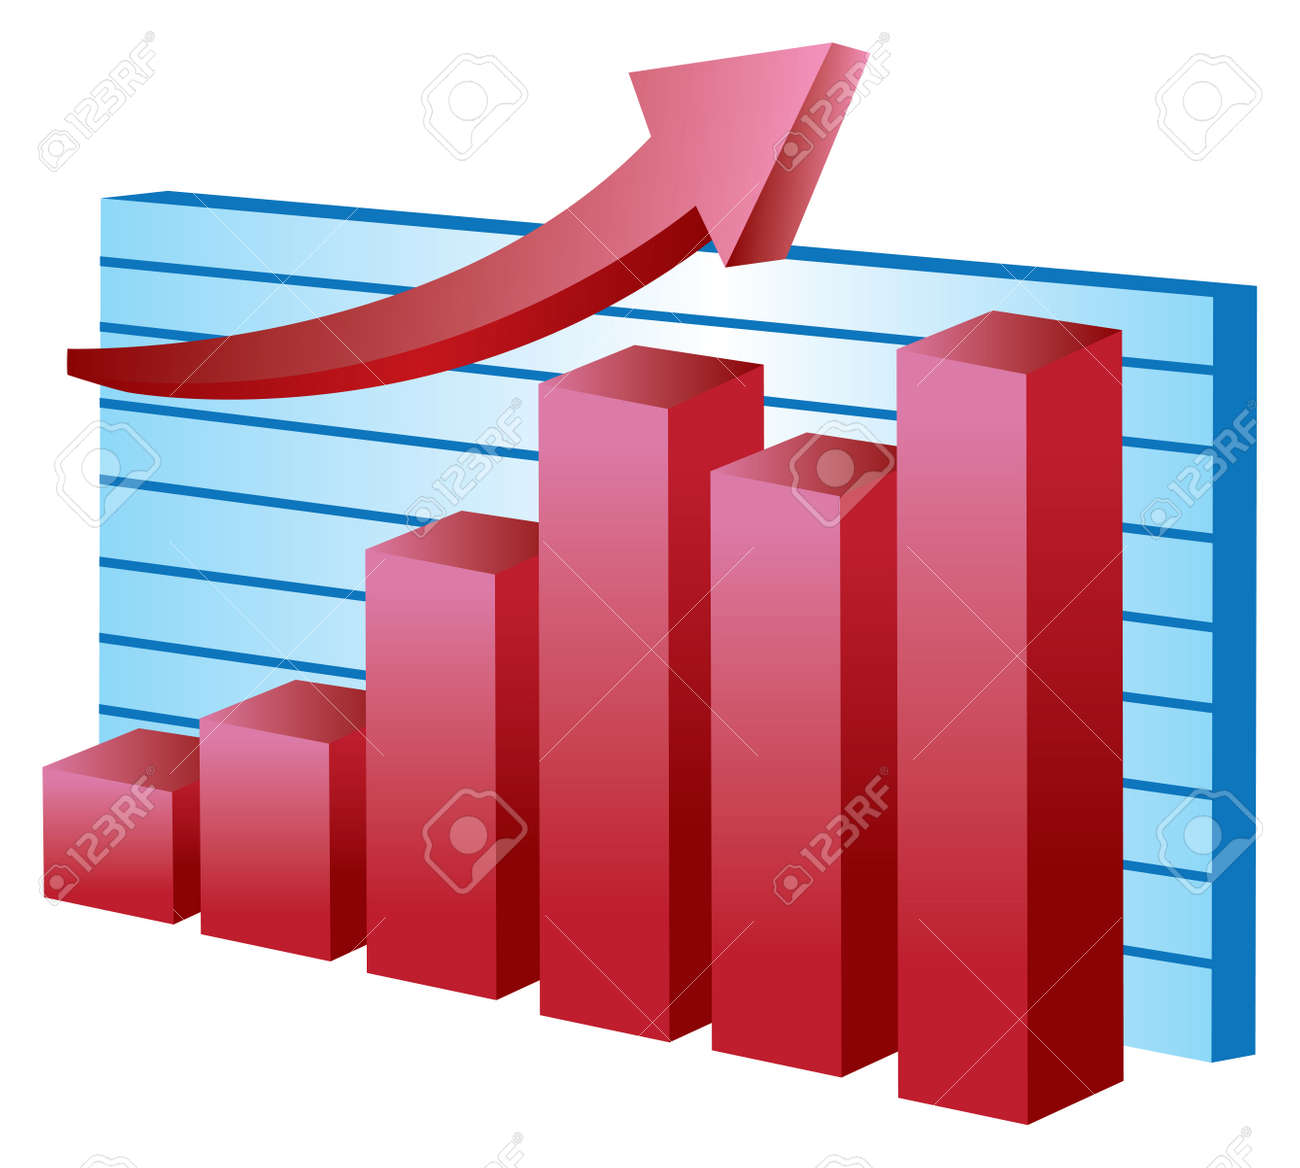 illustration of business charts, showing growth with red arrow over white background Stock Vector - 14877980